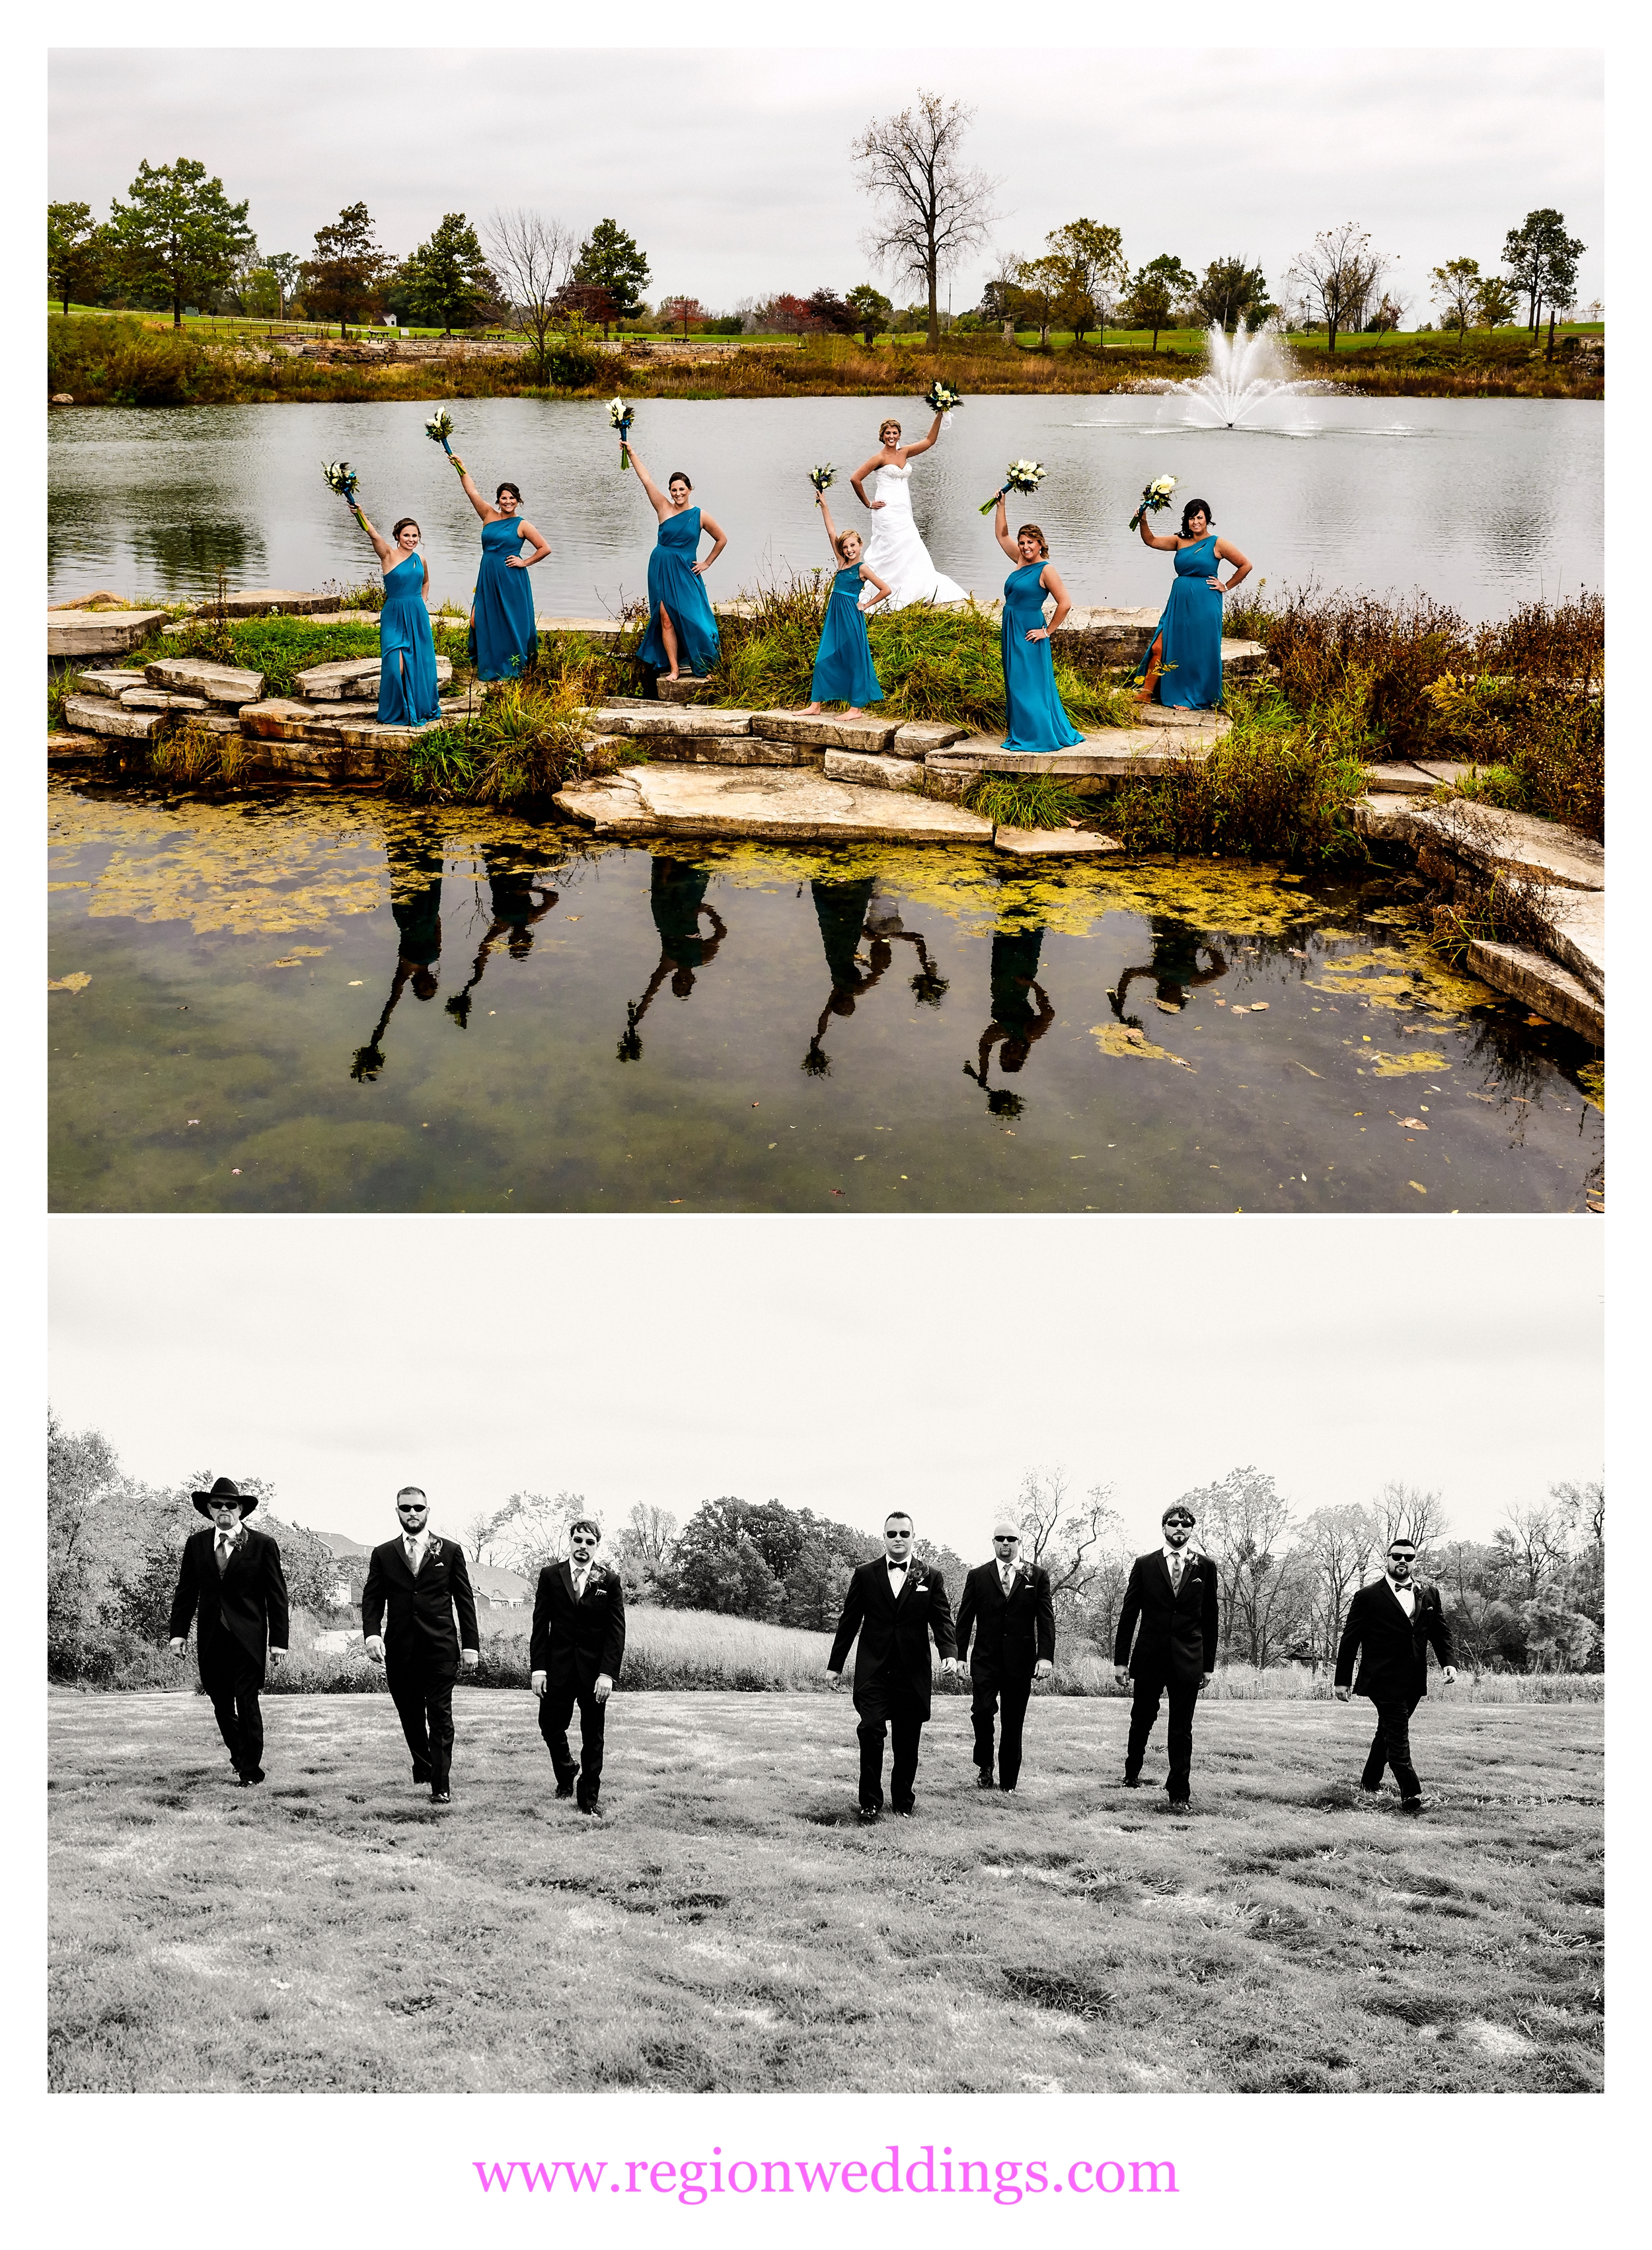 Bridesmaids and groomsmen at Coffee Creek Nature Preserve in Chesterton, Indiana.